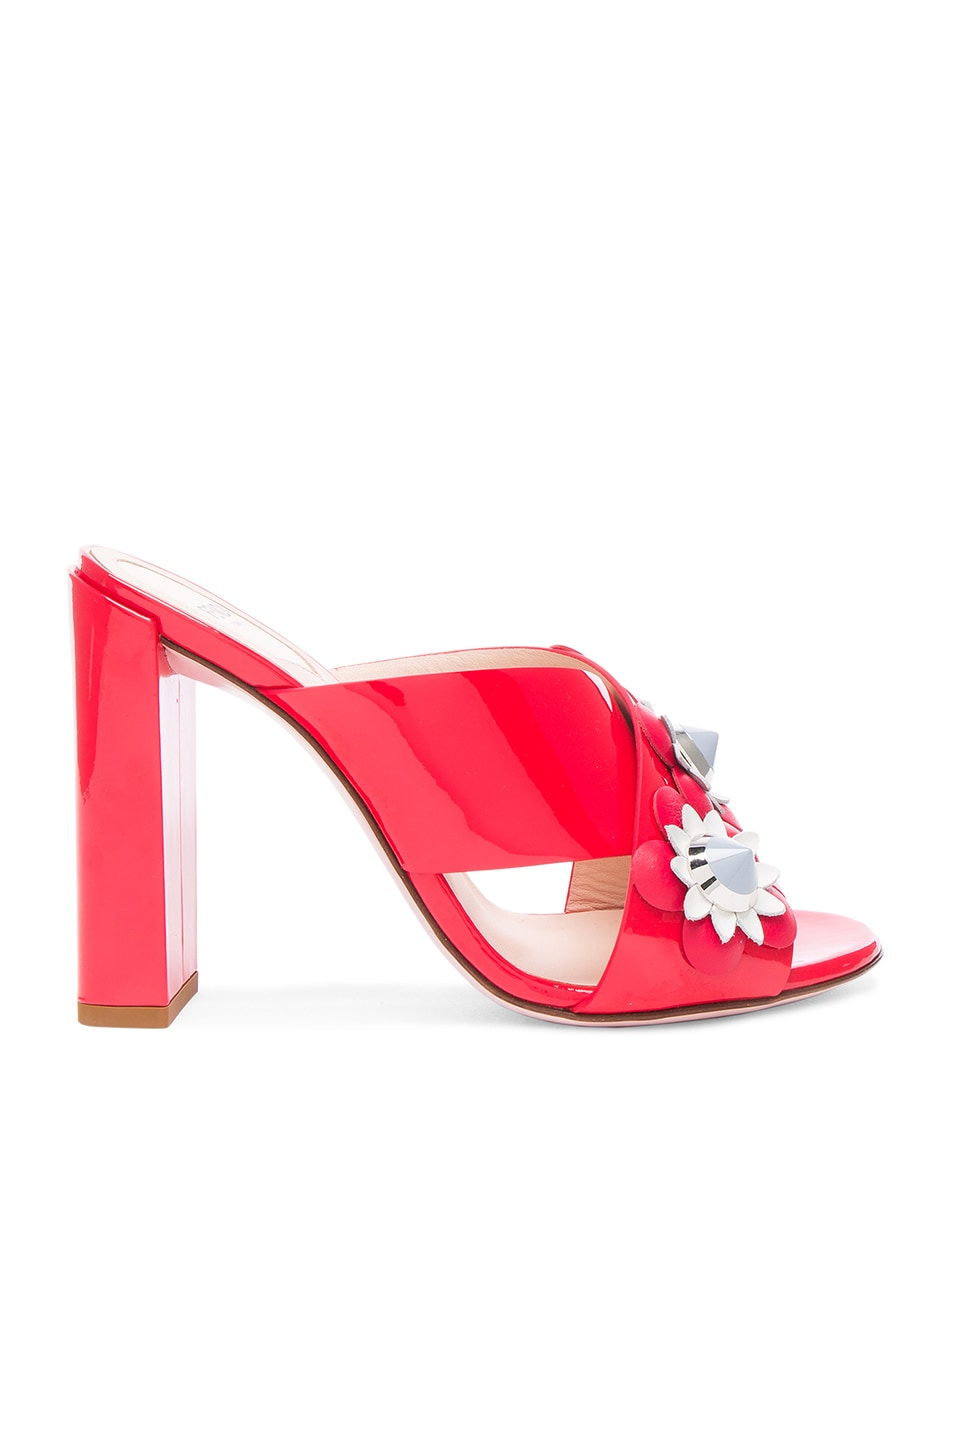 Image 1 of Fendi Patent Leather Crisscross Heels in Red Flowerland